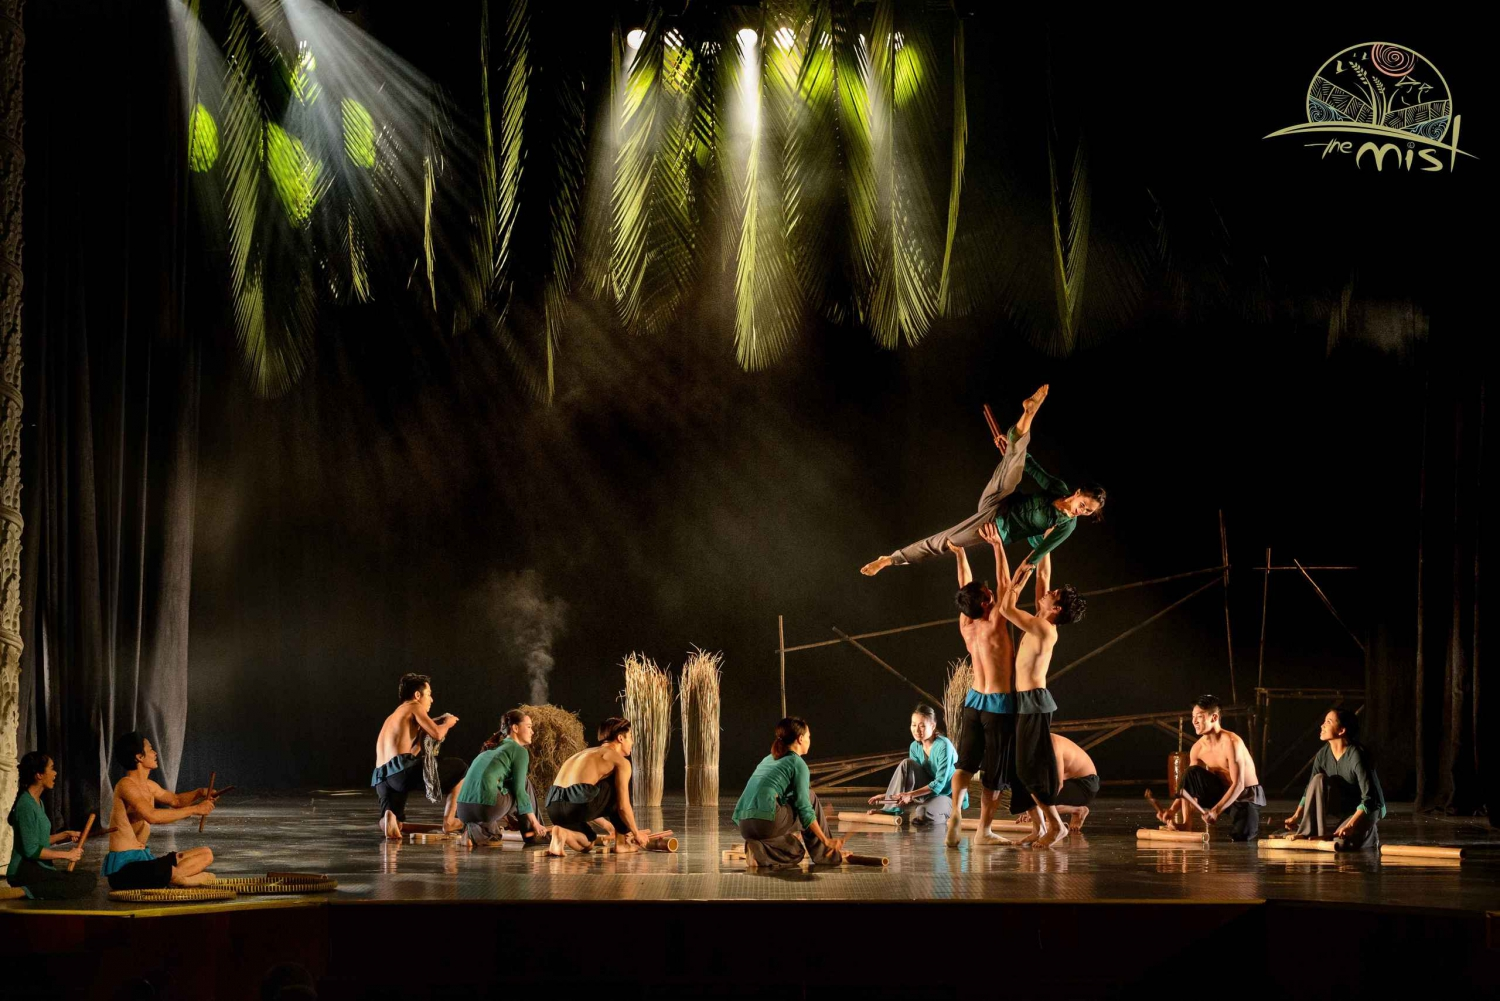 Saigon Opera House: The Mist Contemporary Dance Show Ticket